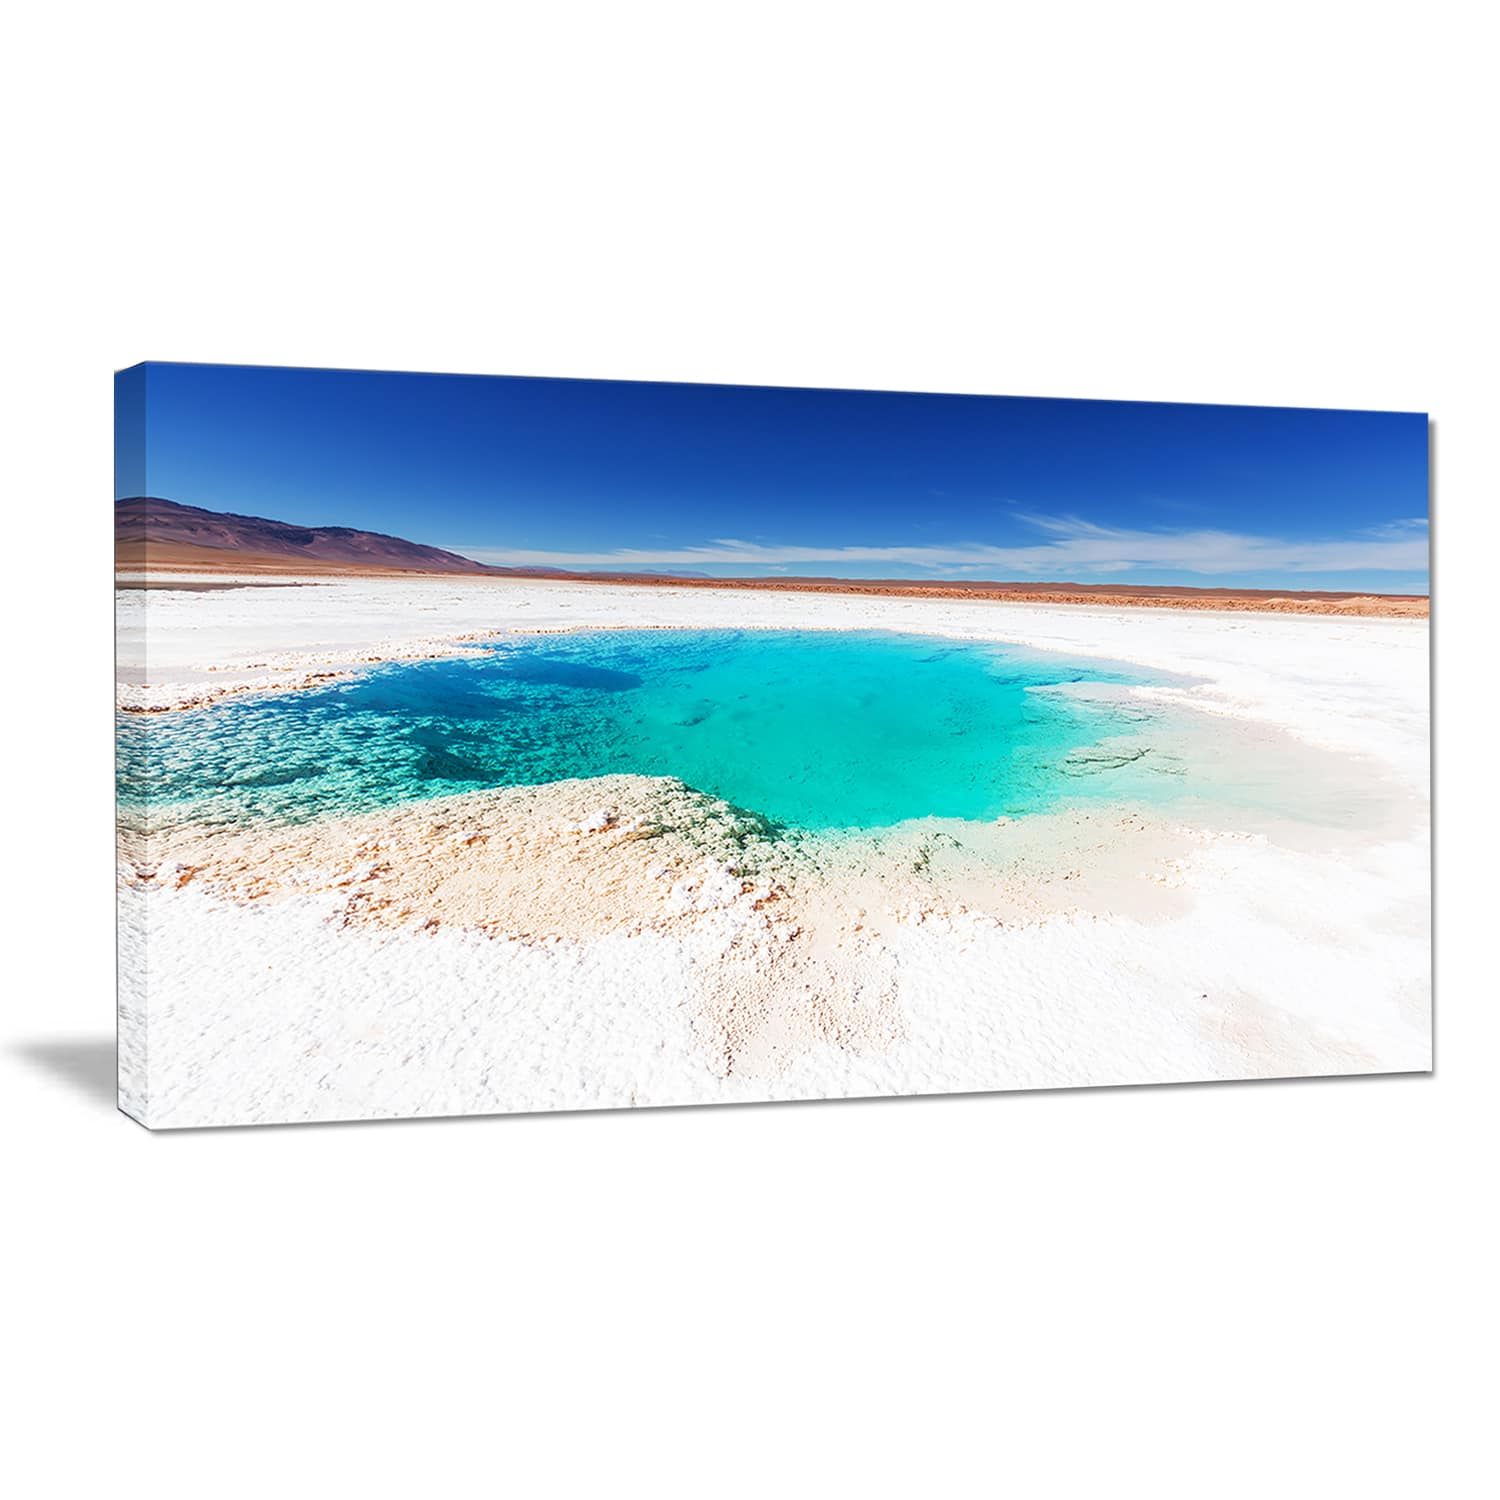 Gallery wrapped canvas for less for Furniture 4 less salinas